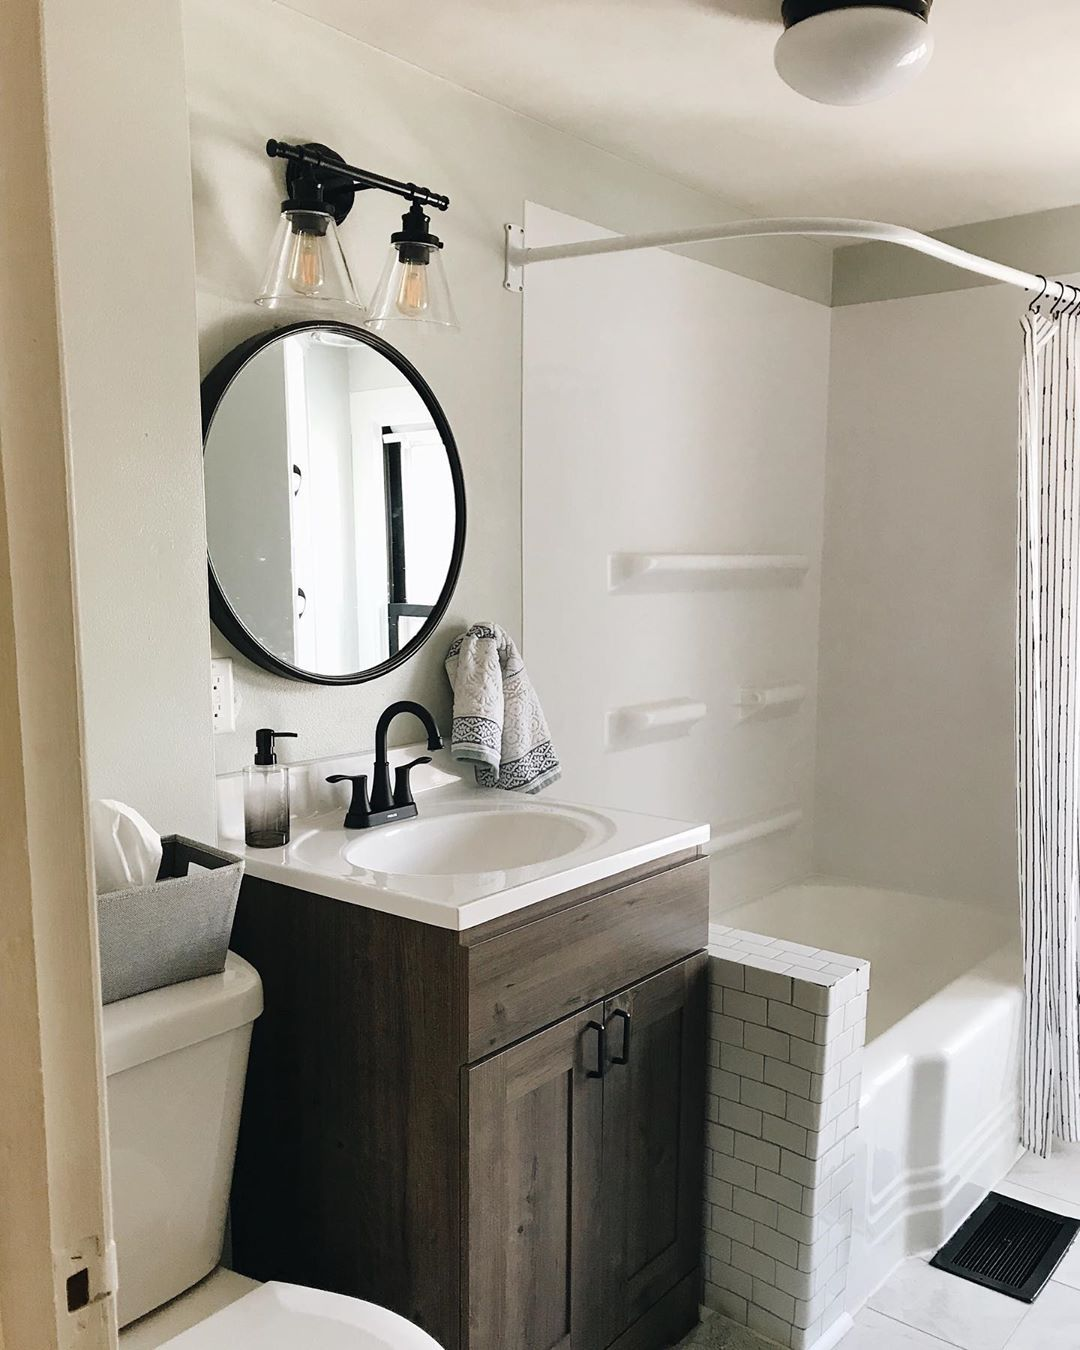 Katie On Instagram Renovations Don T Have To Cost A Lot Of Money And They Don T Mean You Need To Tear Down Walls In 2020 Round Mirror Bathroom Bathroom Renovations